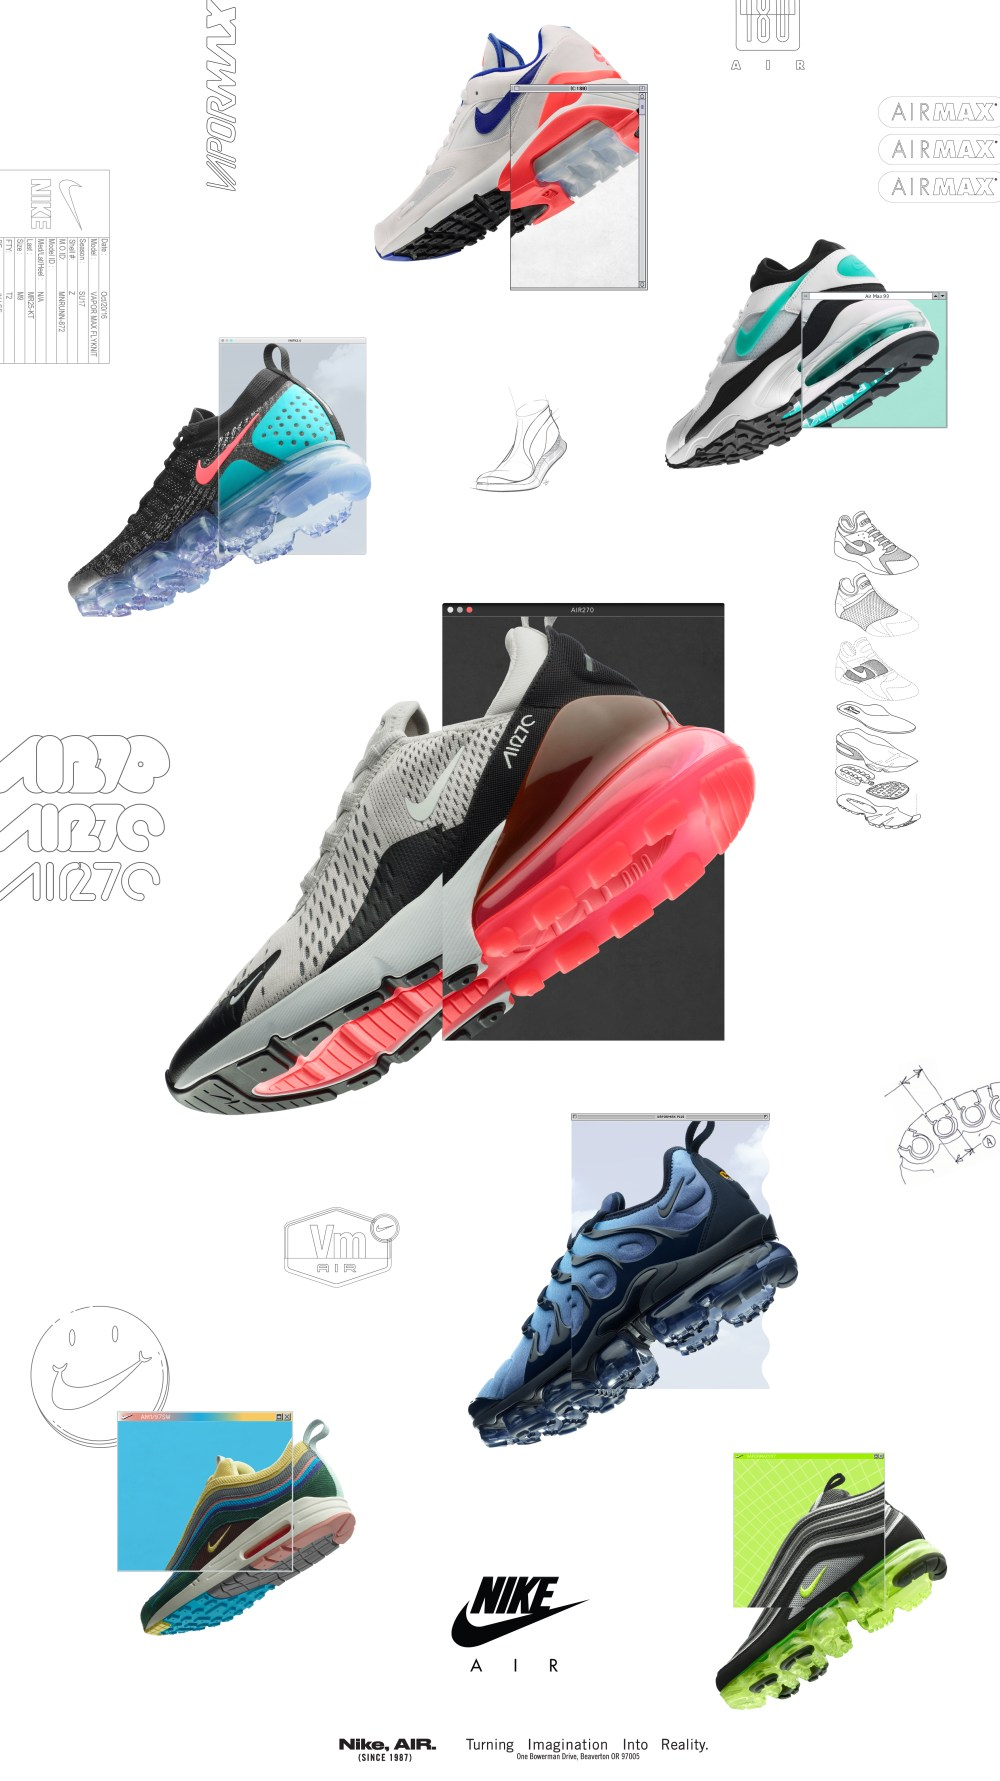 air max day AIR MAX DAY 2018 LINE UP Imagination Into Reality 16x9 vertical original